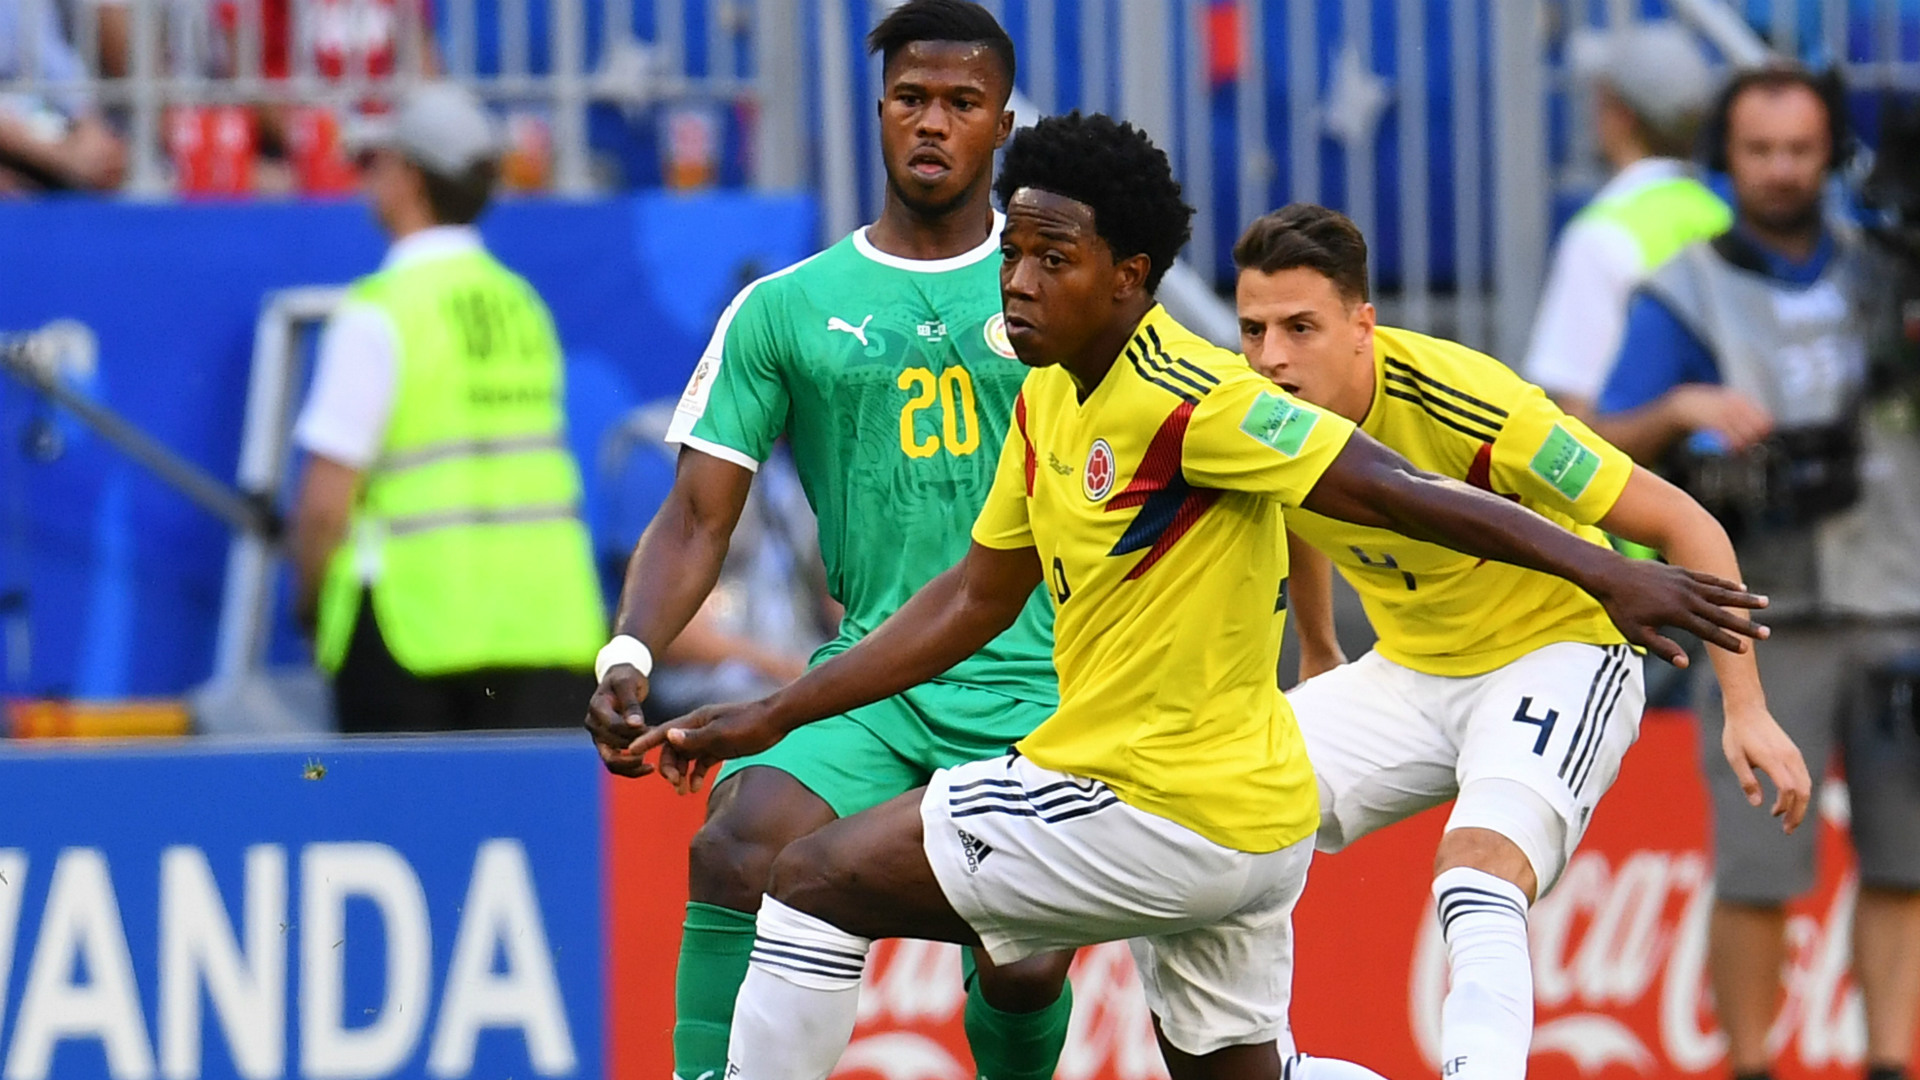 Carlos Sanchez Colombia Senegal WC Russia 28062018